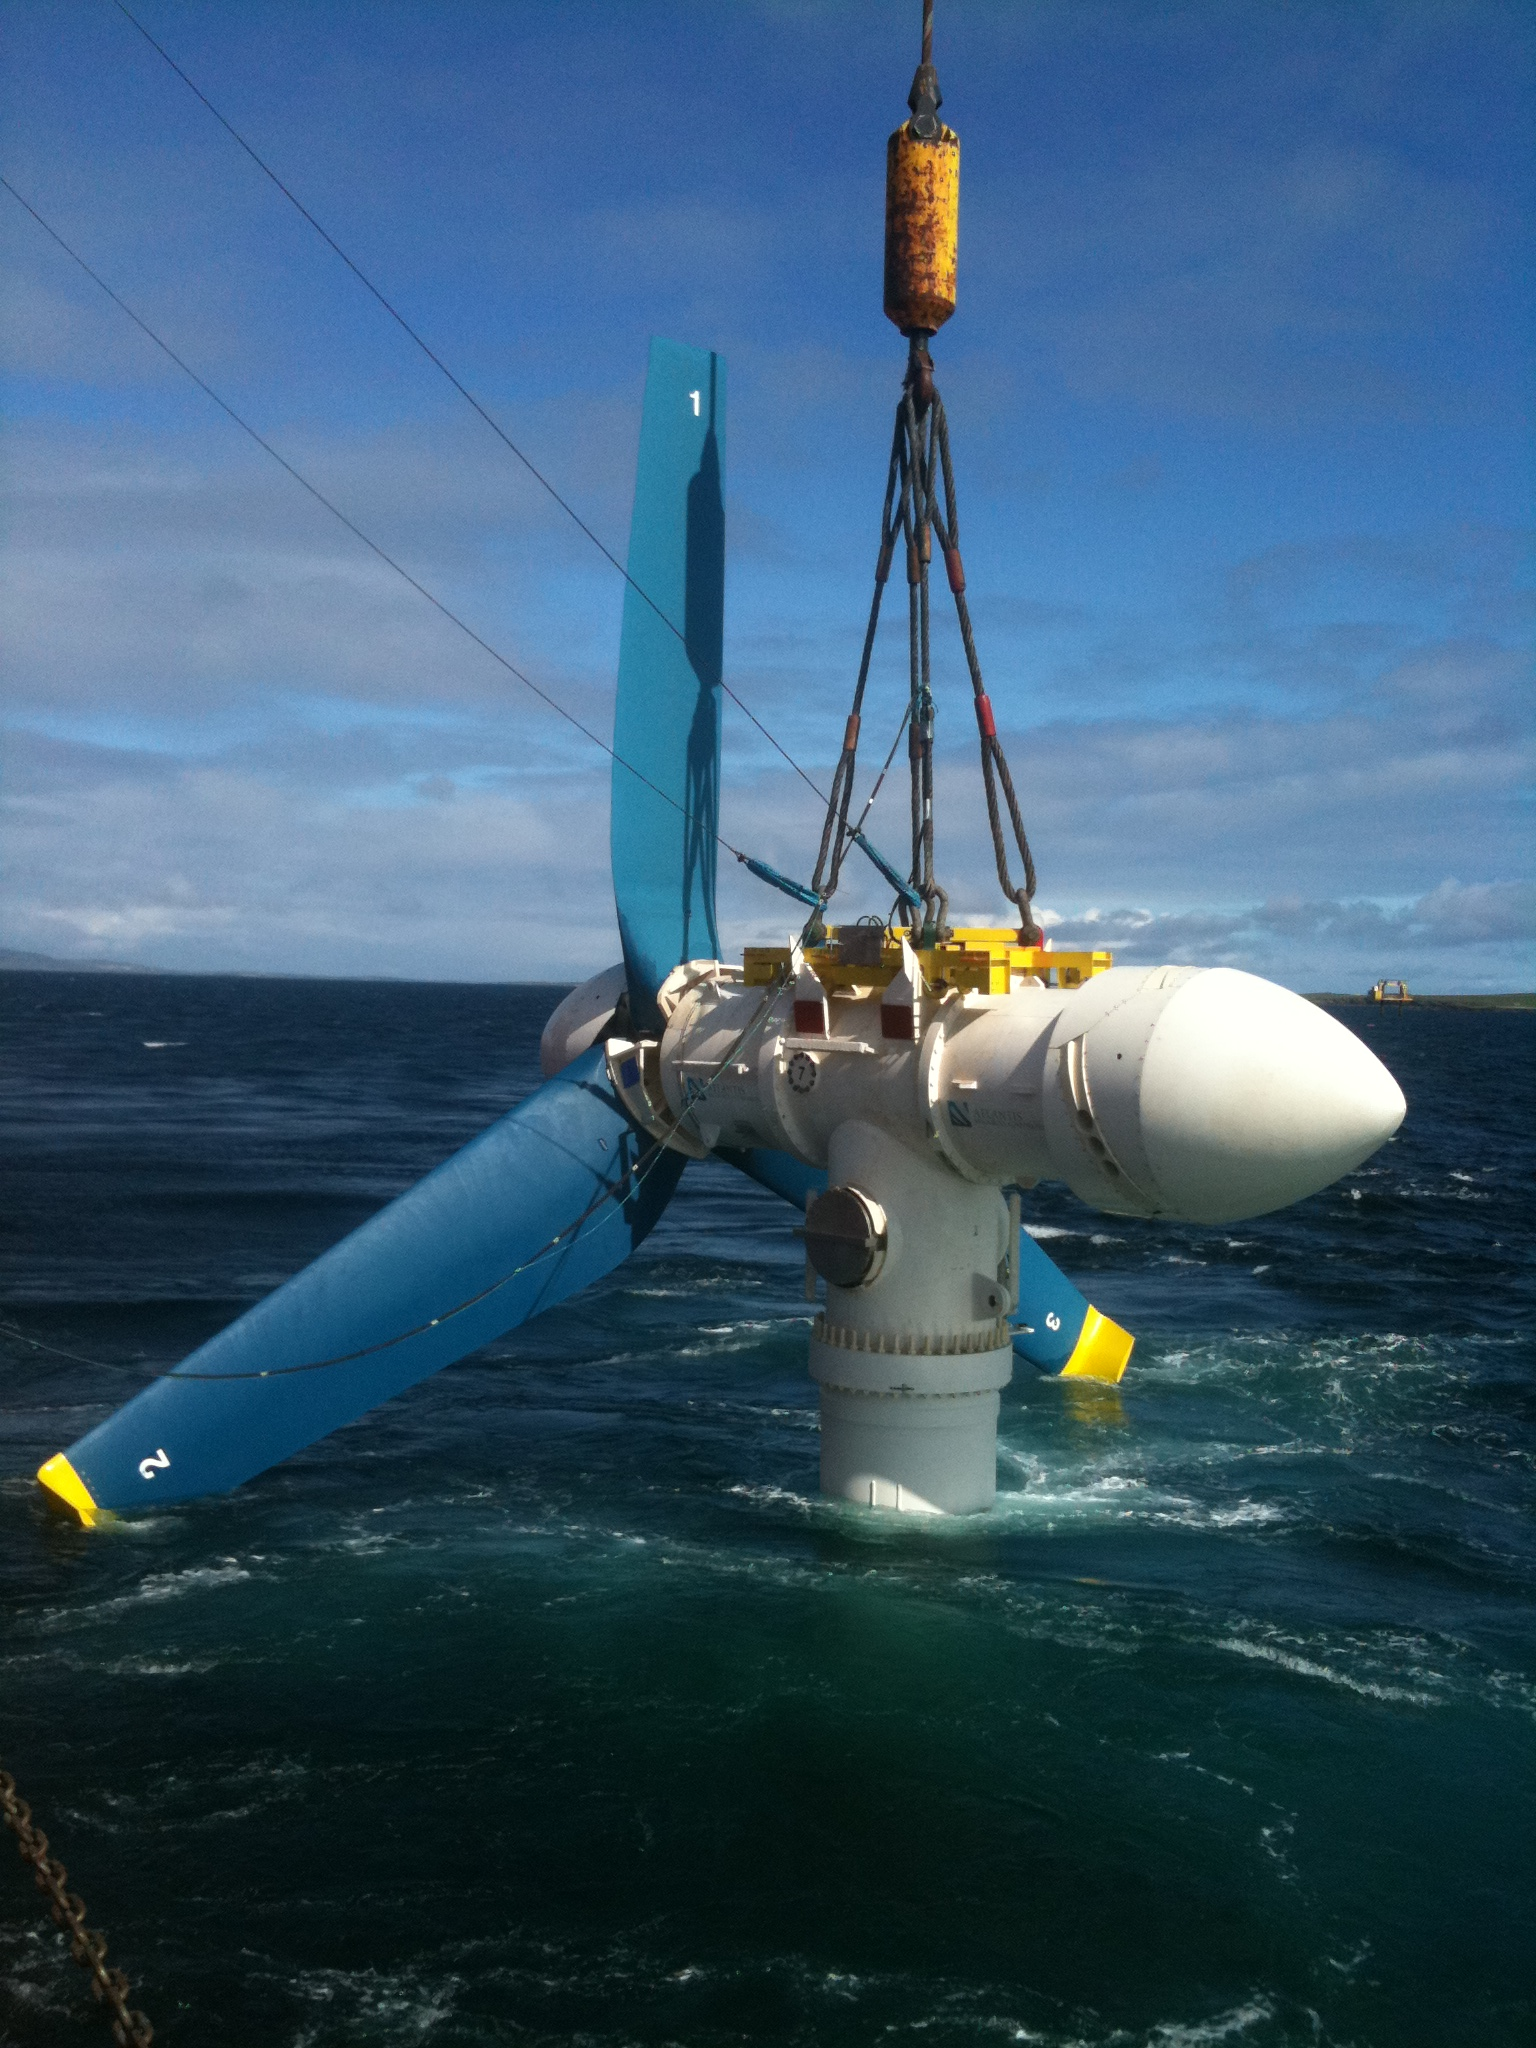 Figure 1 - An AR1000 tidal turbine is deployed at the European Marine Energy Centre in Orkney. The turbine section is carefully lowered into the water from the deck of the installing vessel using its crane.